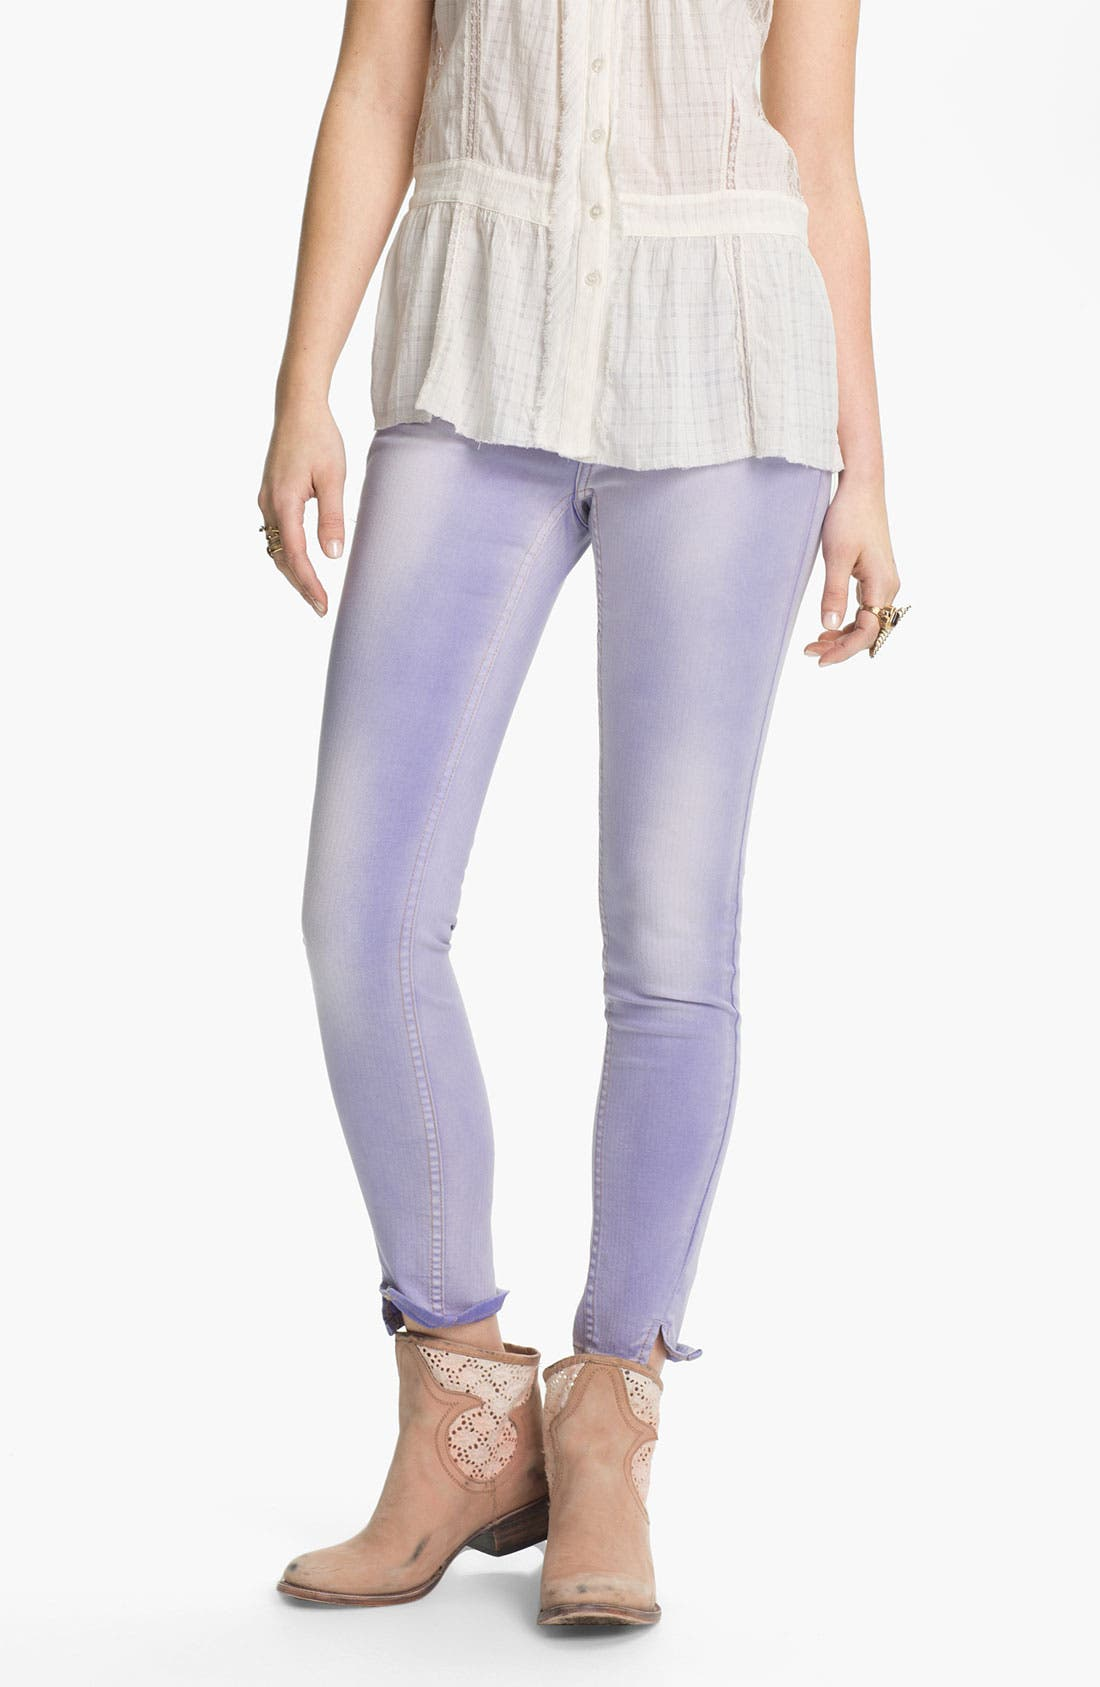 Alternate Image 1 Selected - Free People Crop Stretch Denim Skinny Jeans (Clements Blue)